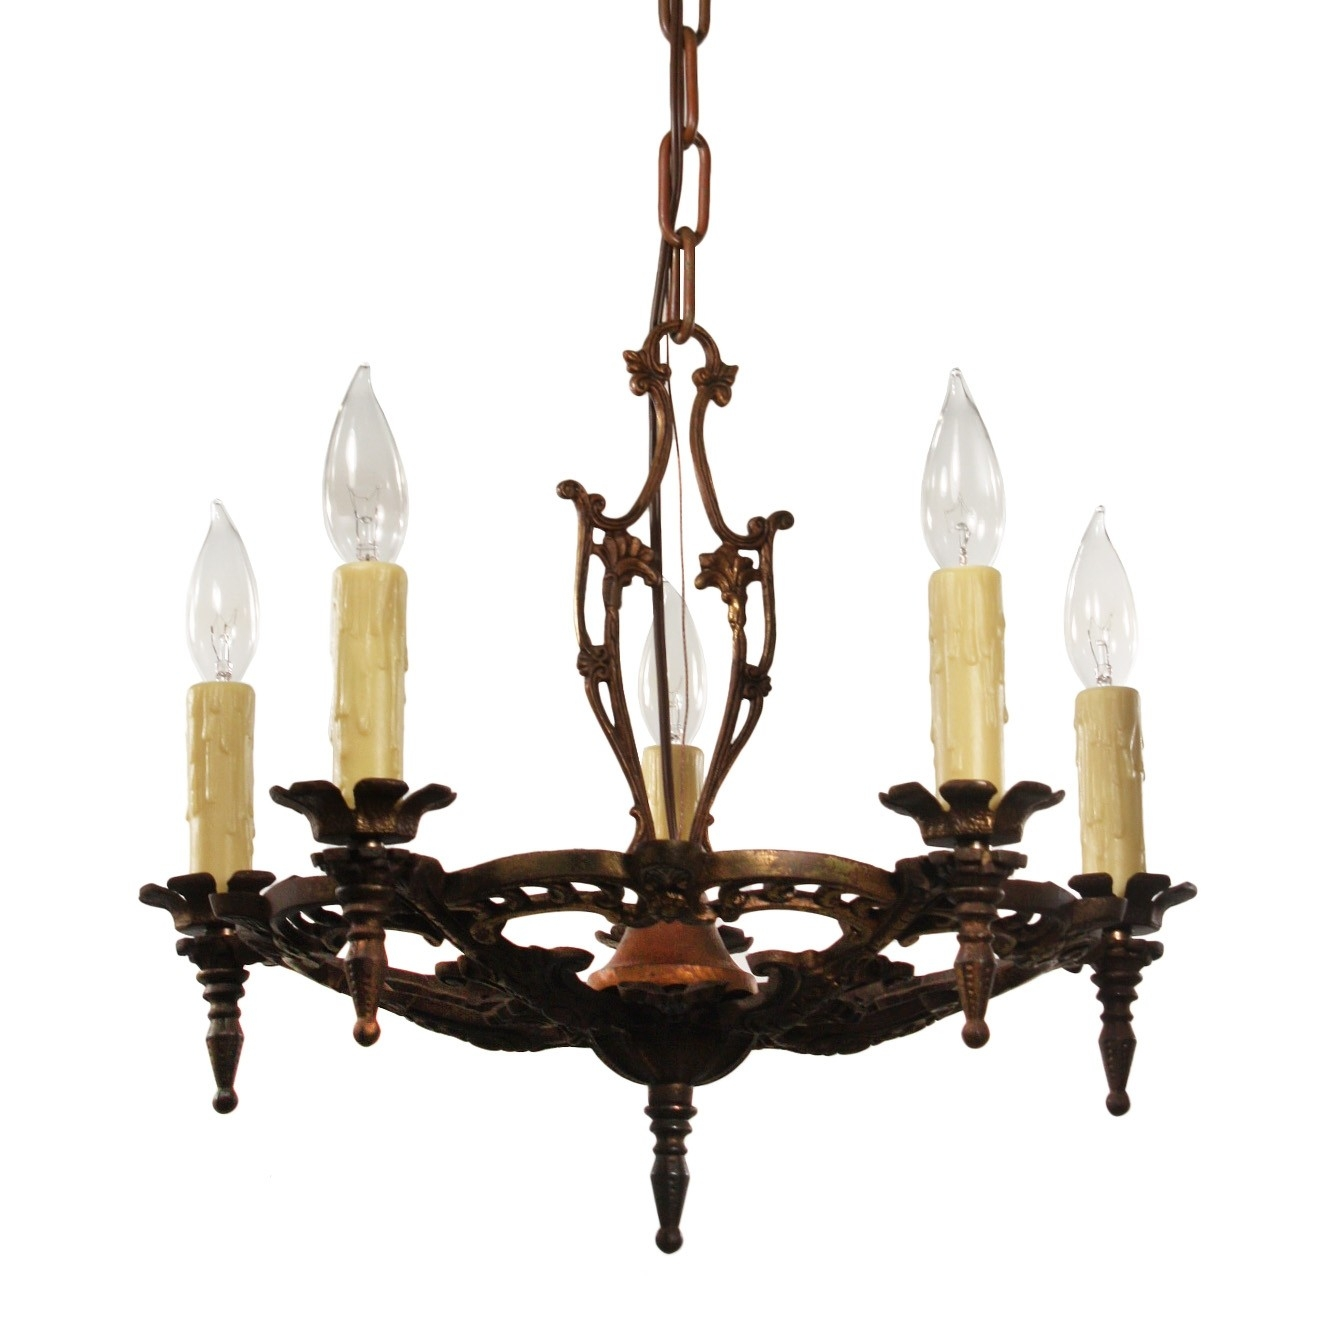 Antique Chandelier In Cast Iron Antique Lighting Preservation With Regard To Cast Iron Antique Chandelier (Image 6 of 15)